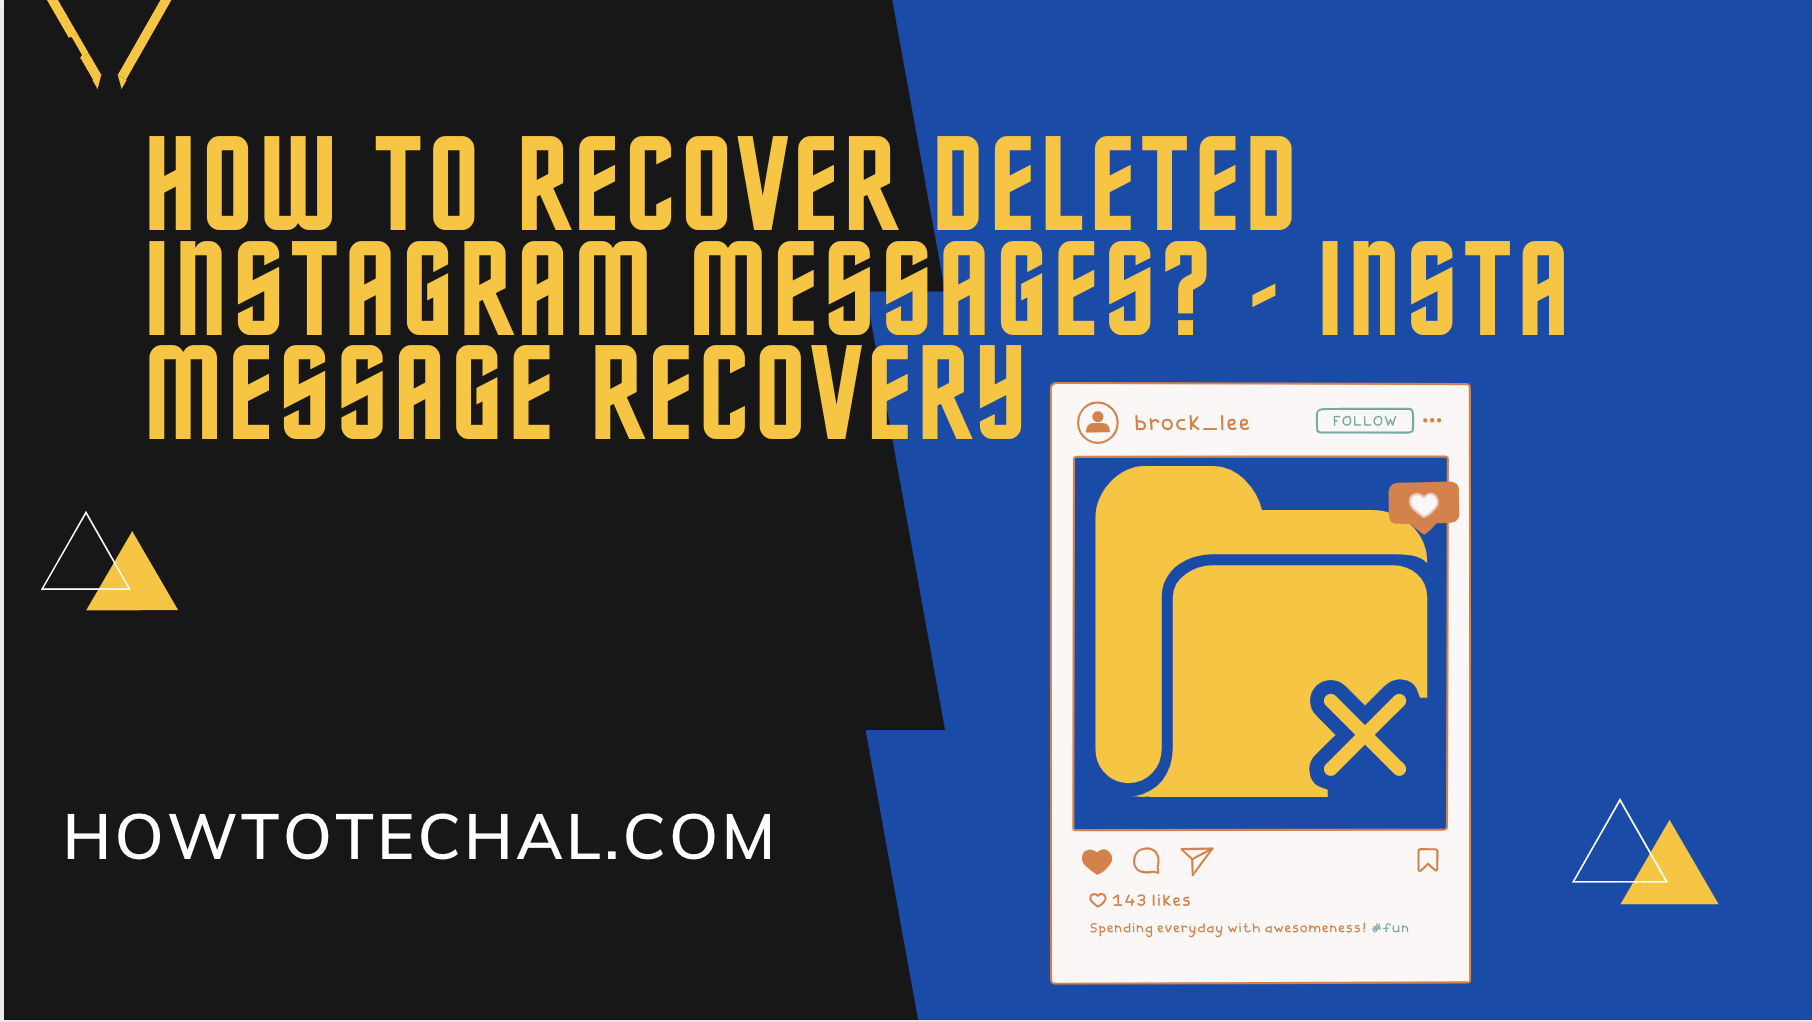 How to Recover Deleted Instagram Messages? – Insta Message Recovery